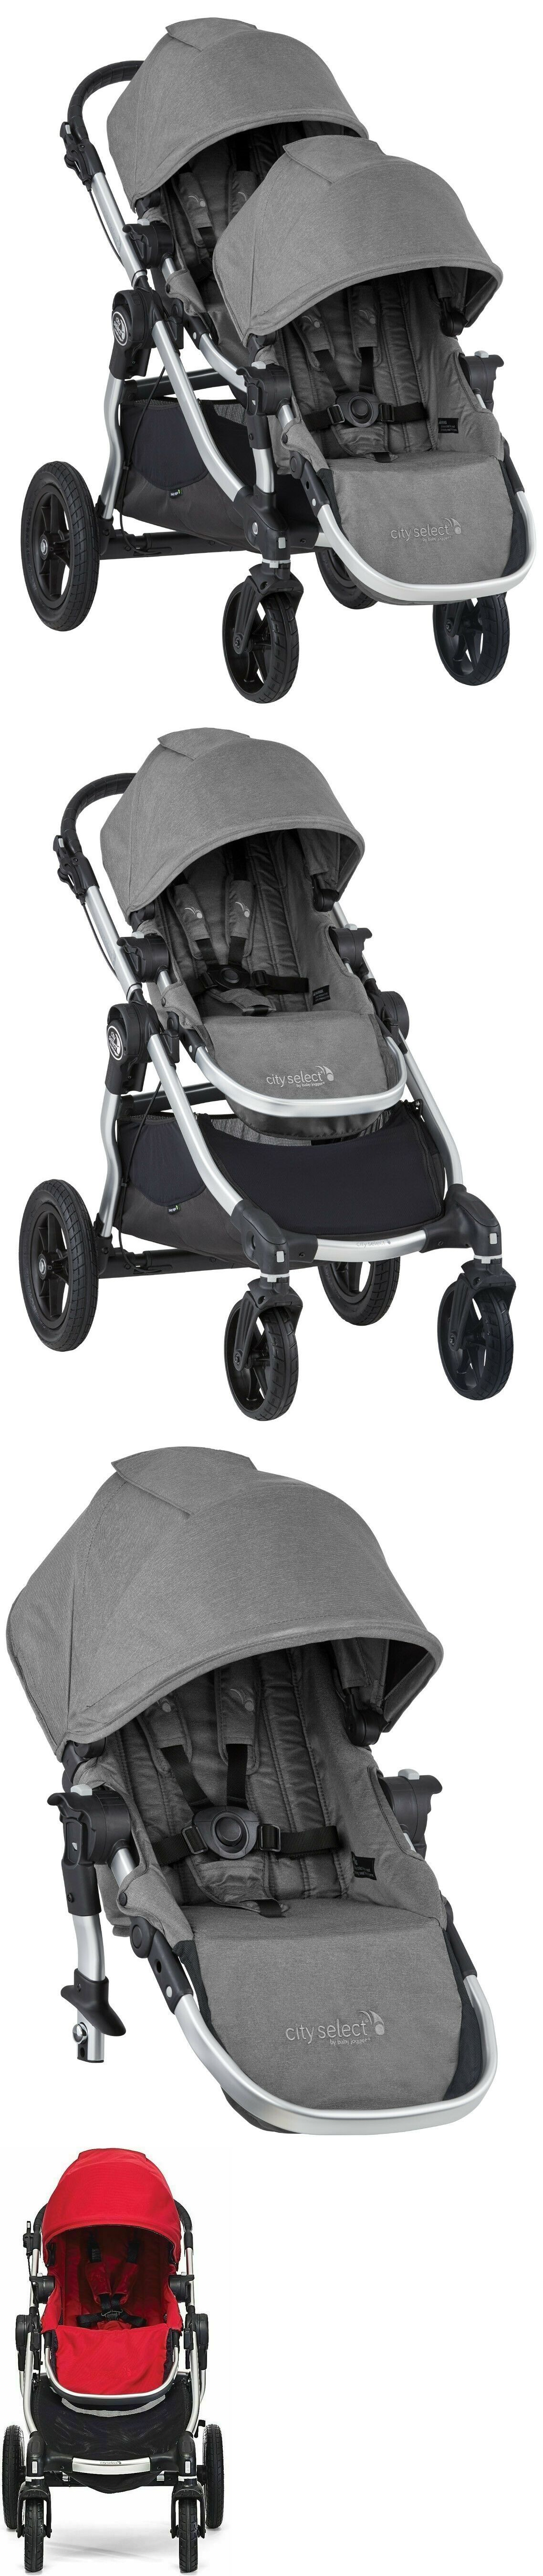 Other Strollers 2989 Baby Jogger City Select Twin Tandem